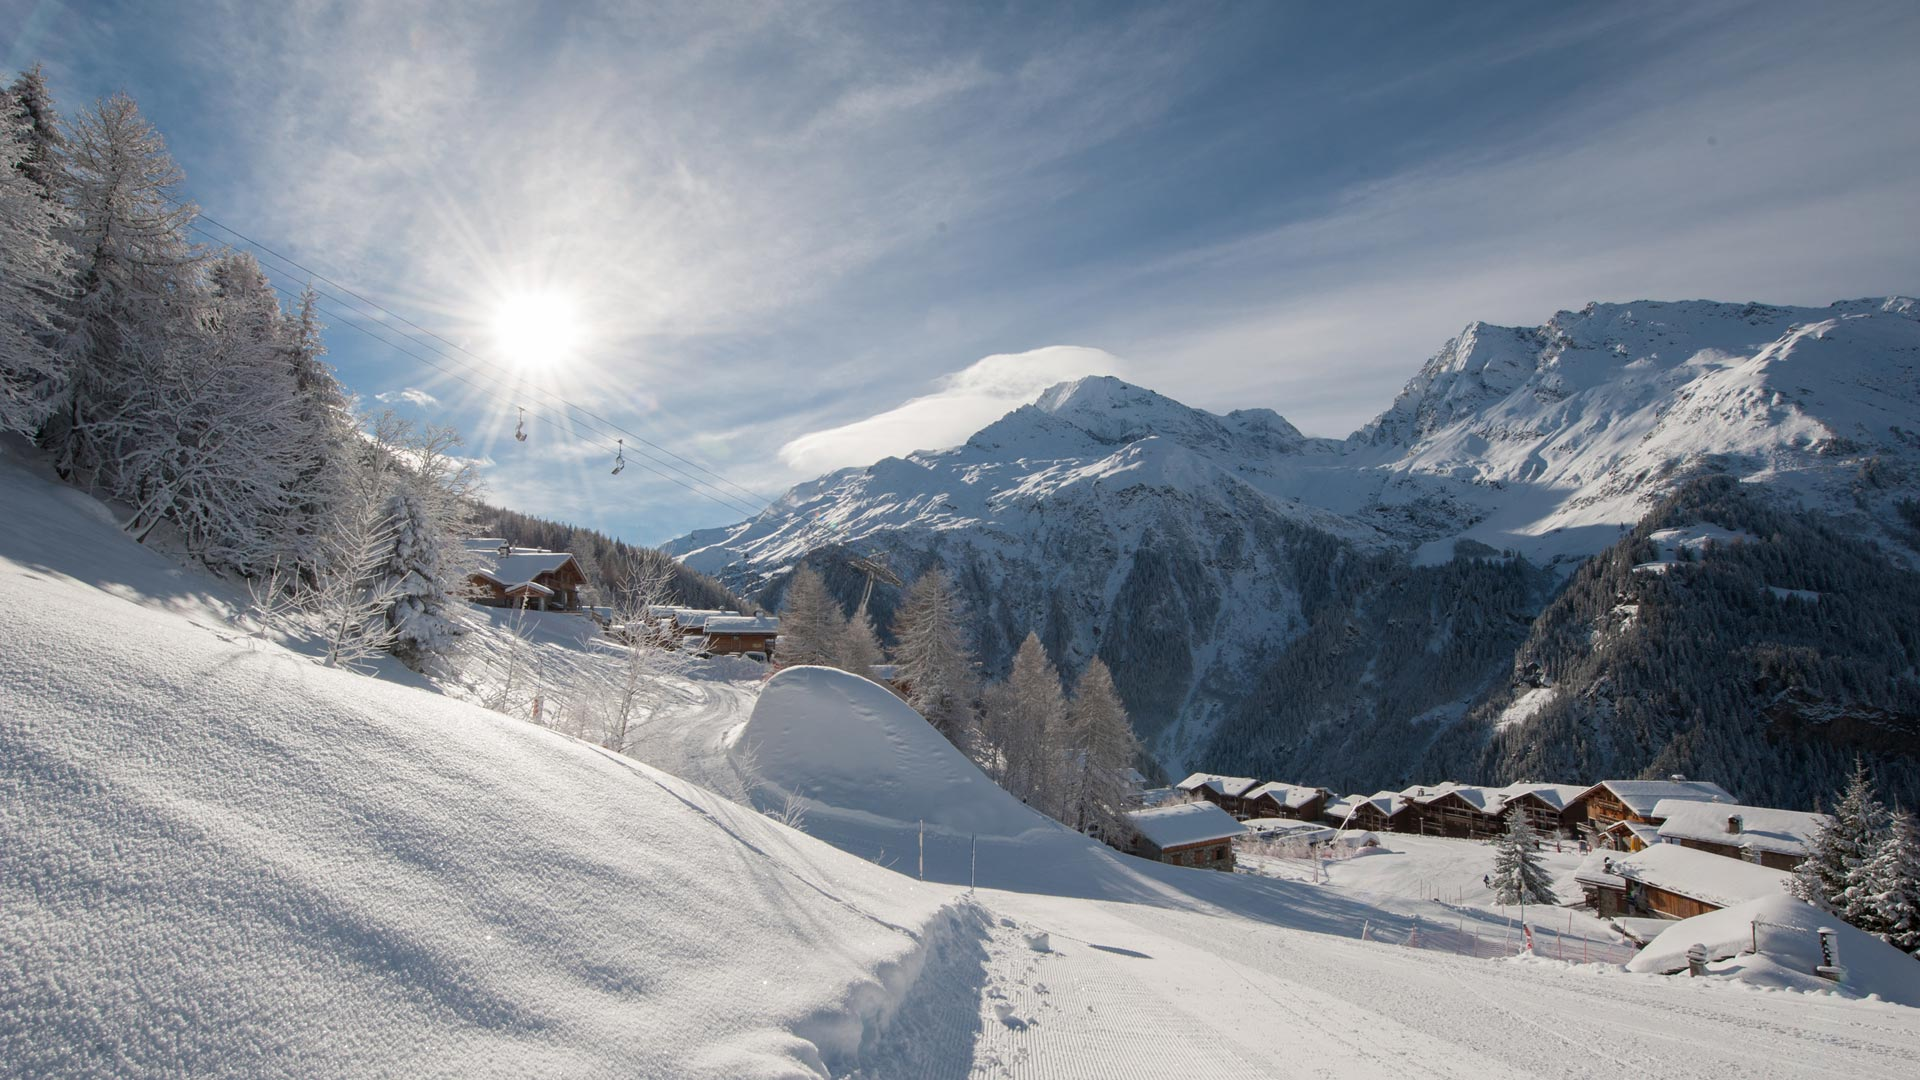 Sainte Foy pistes & resort